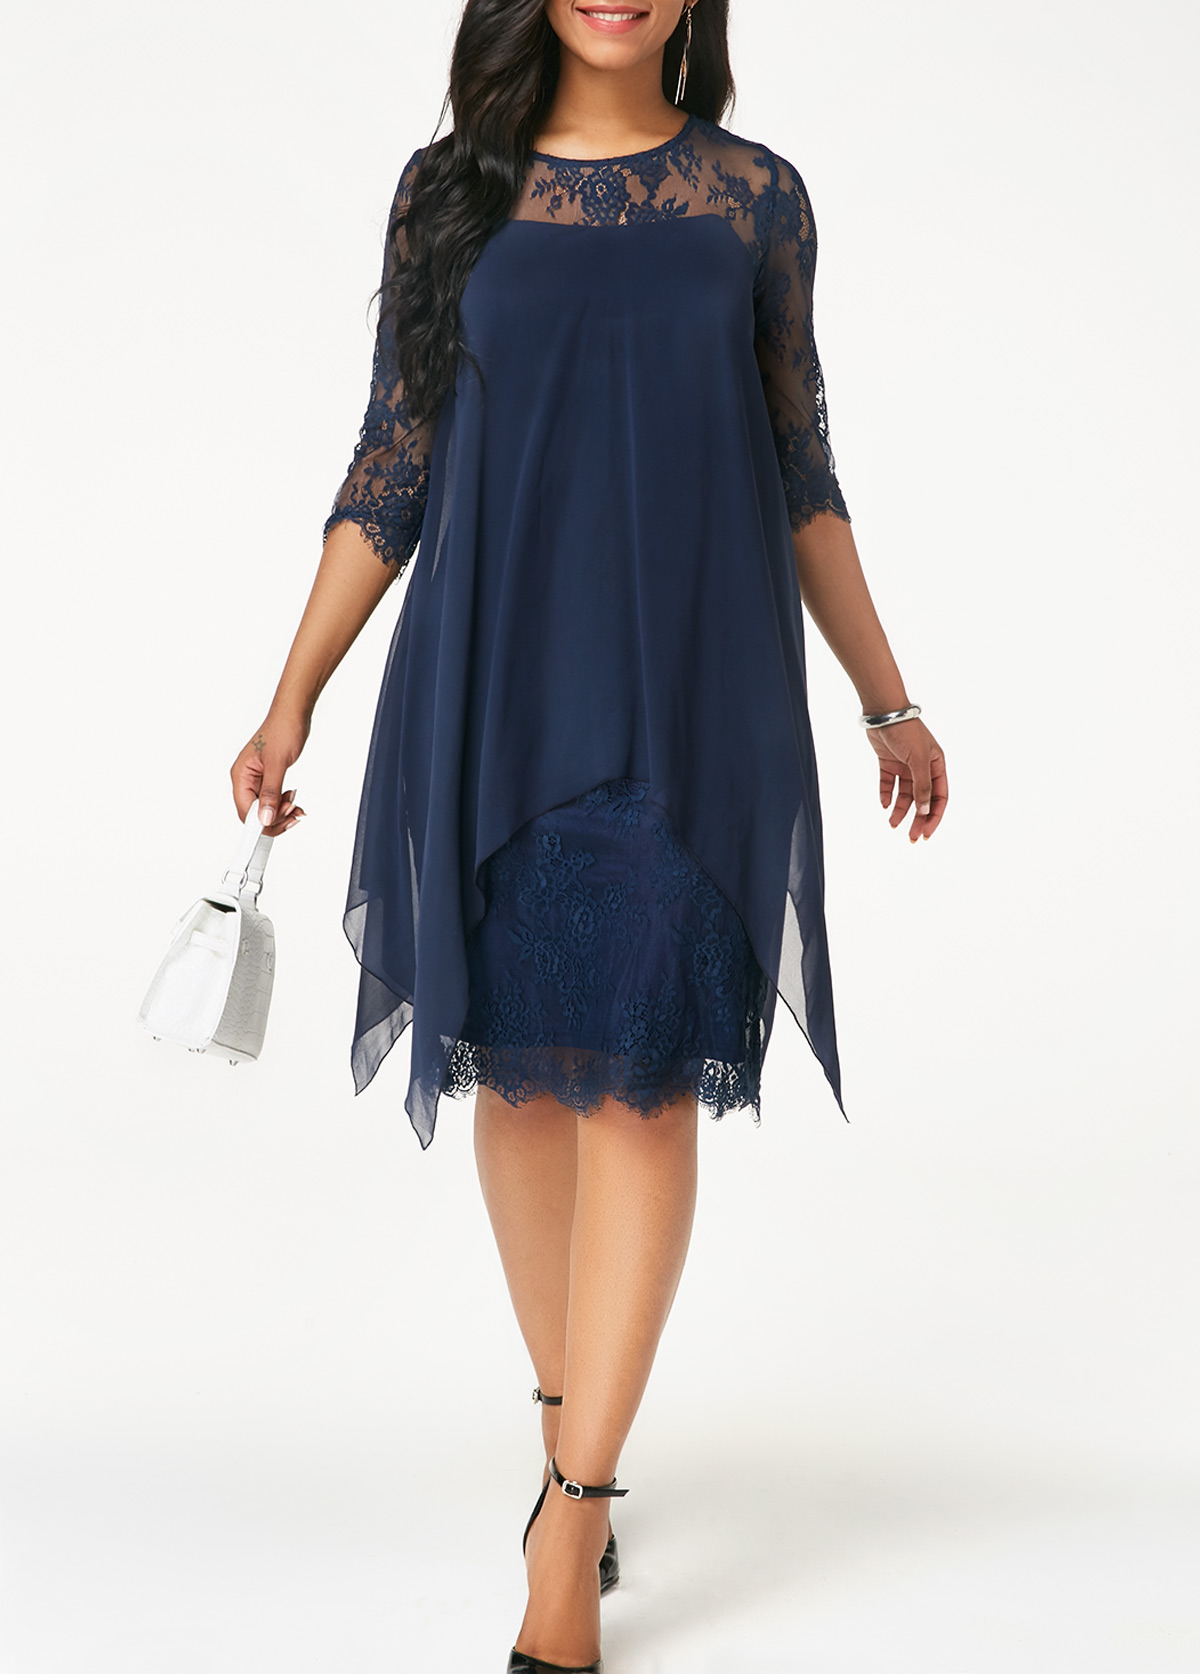 Chiffon Overlay Navy Blue Three Quarter Sleeve Lace Dress